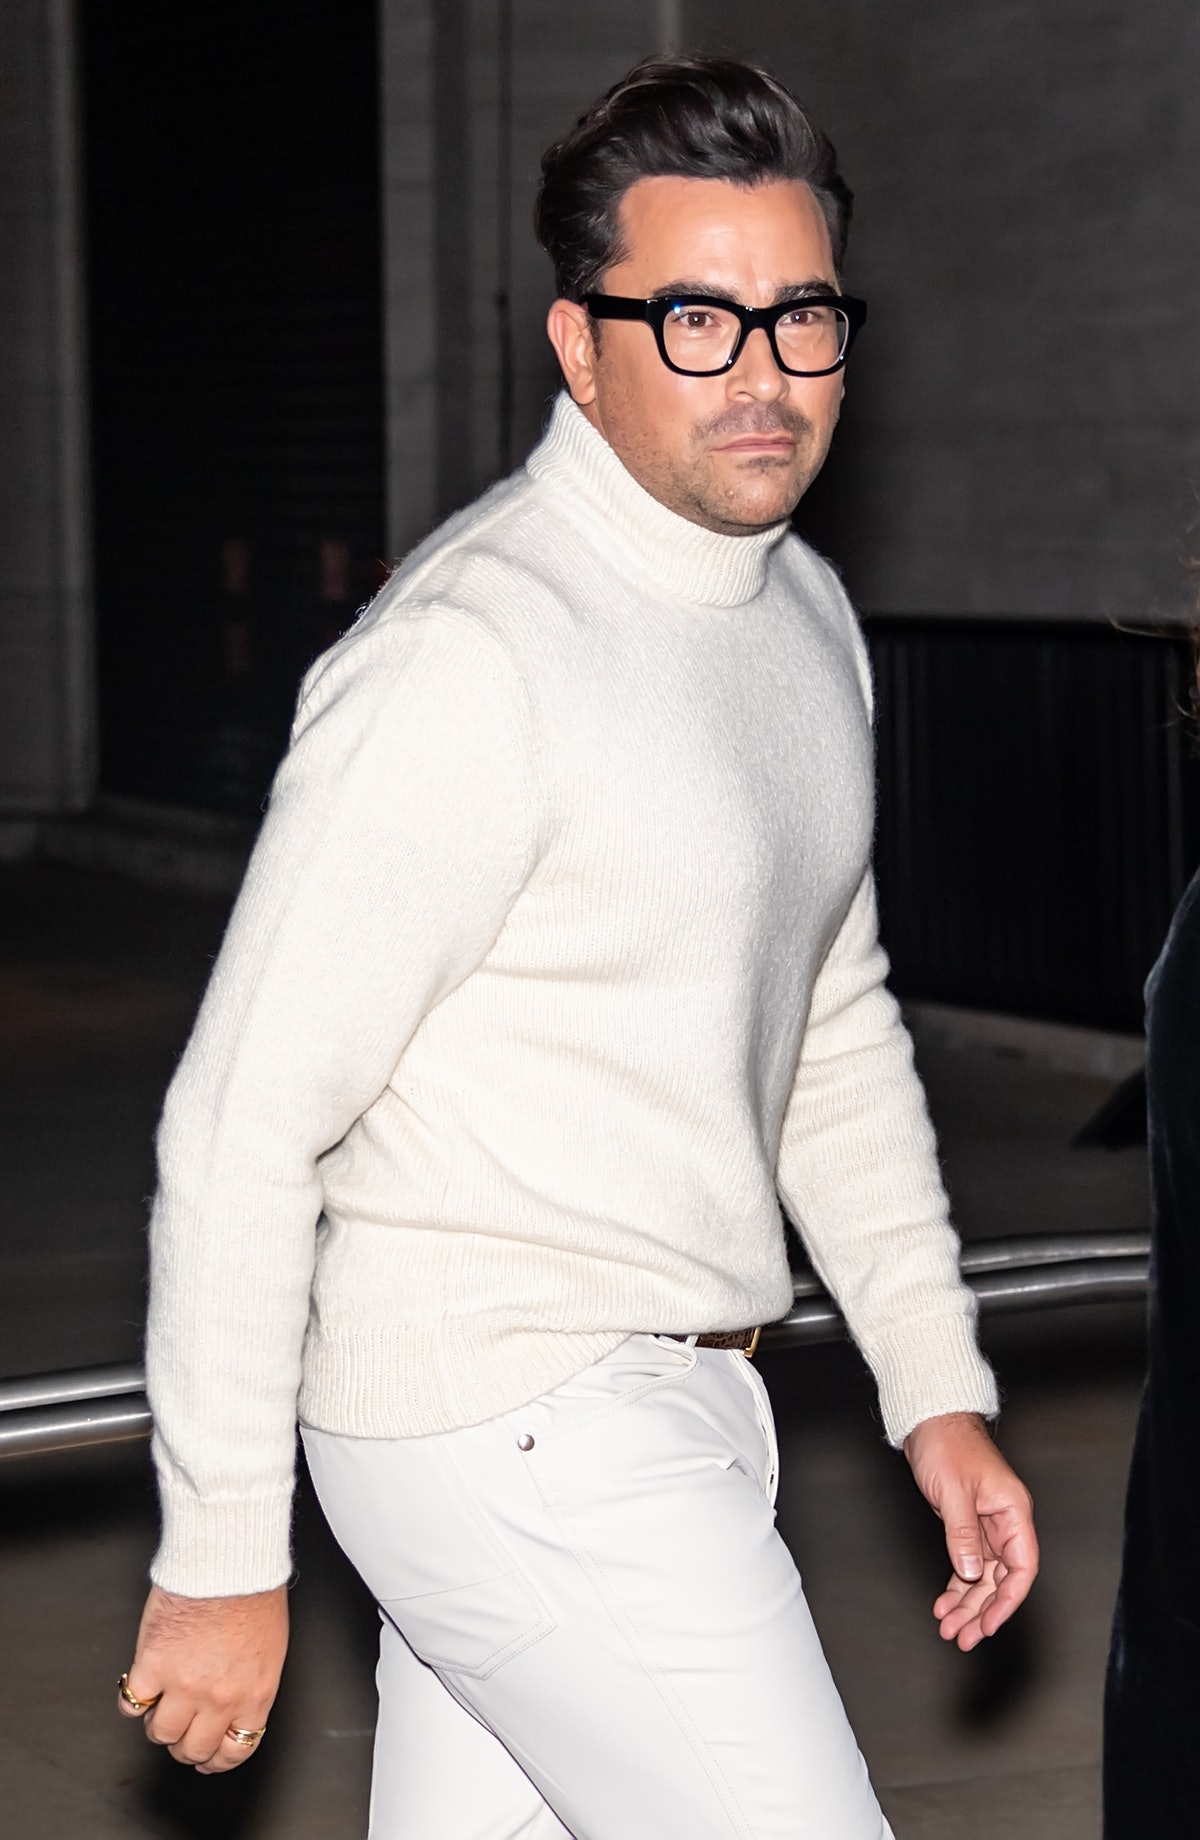 Actor Dan Levy is seen arriving to the Tom Ford spring/summer 2022 fashion show during New York Fash...